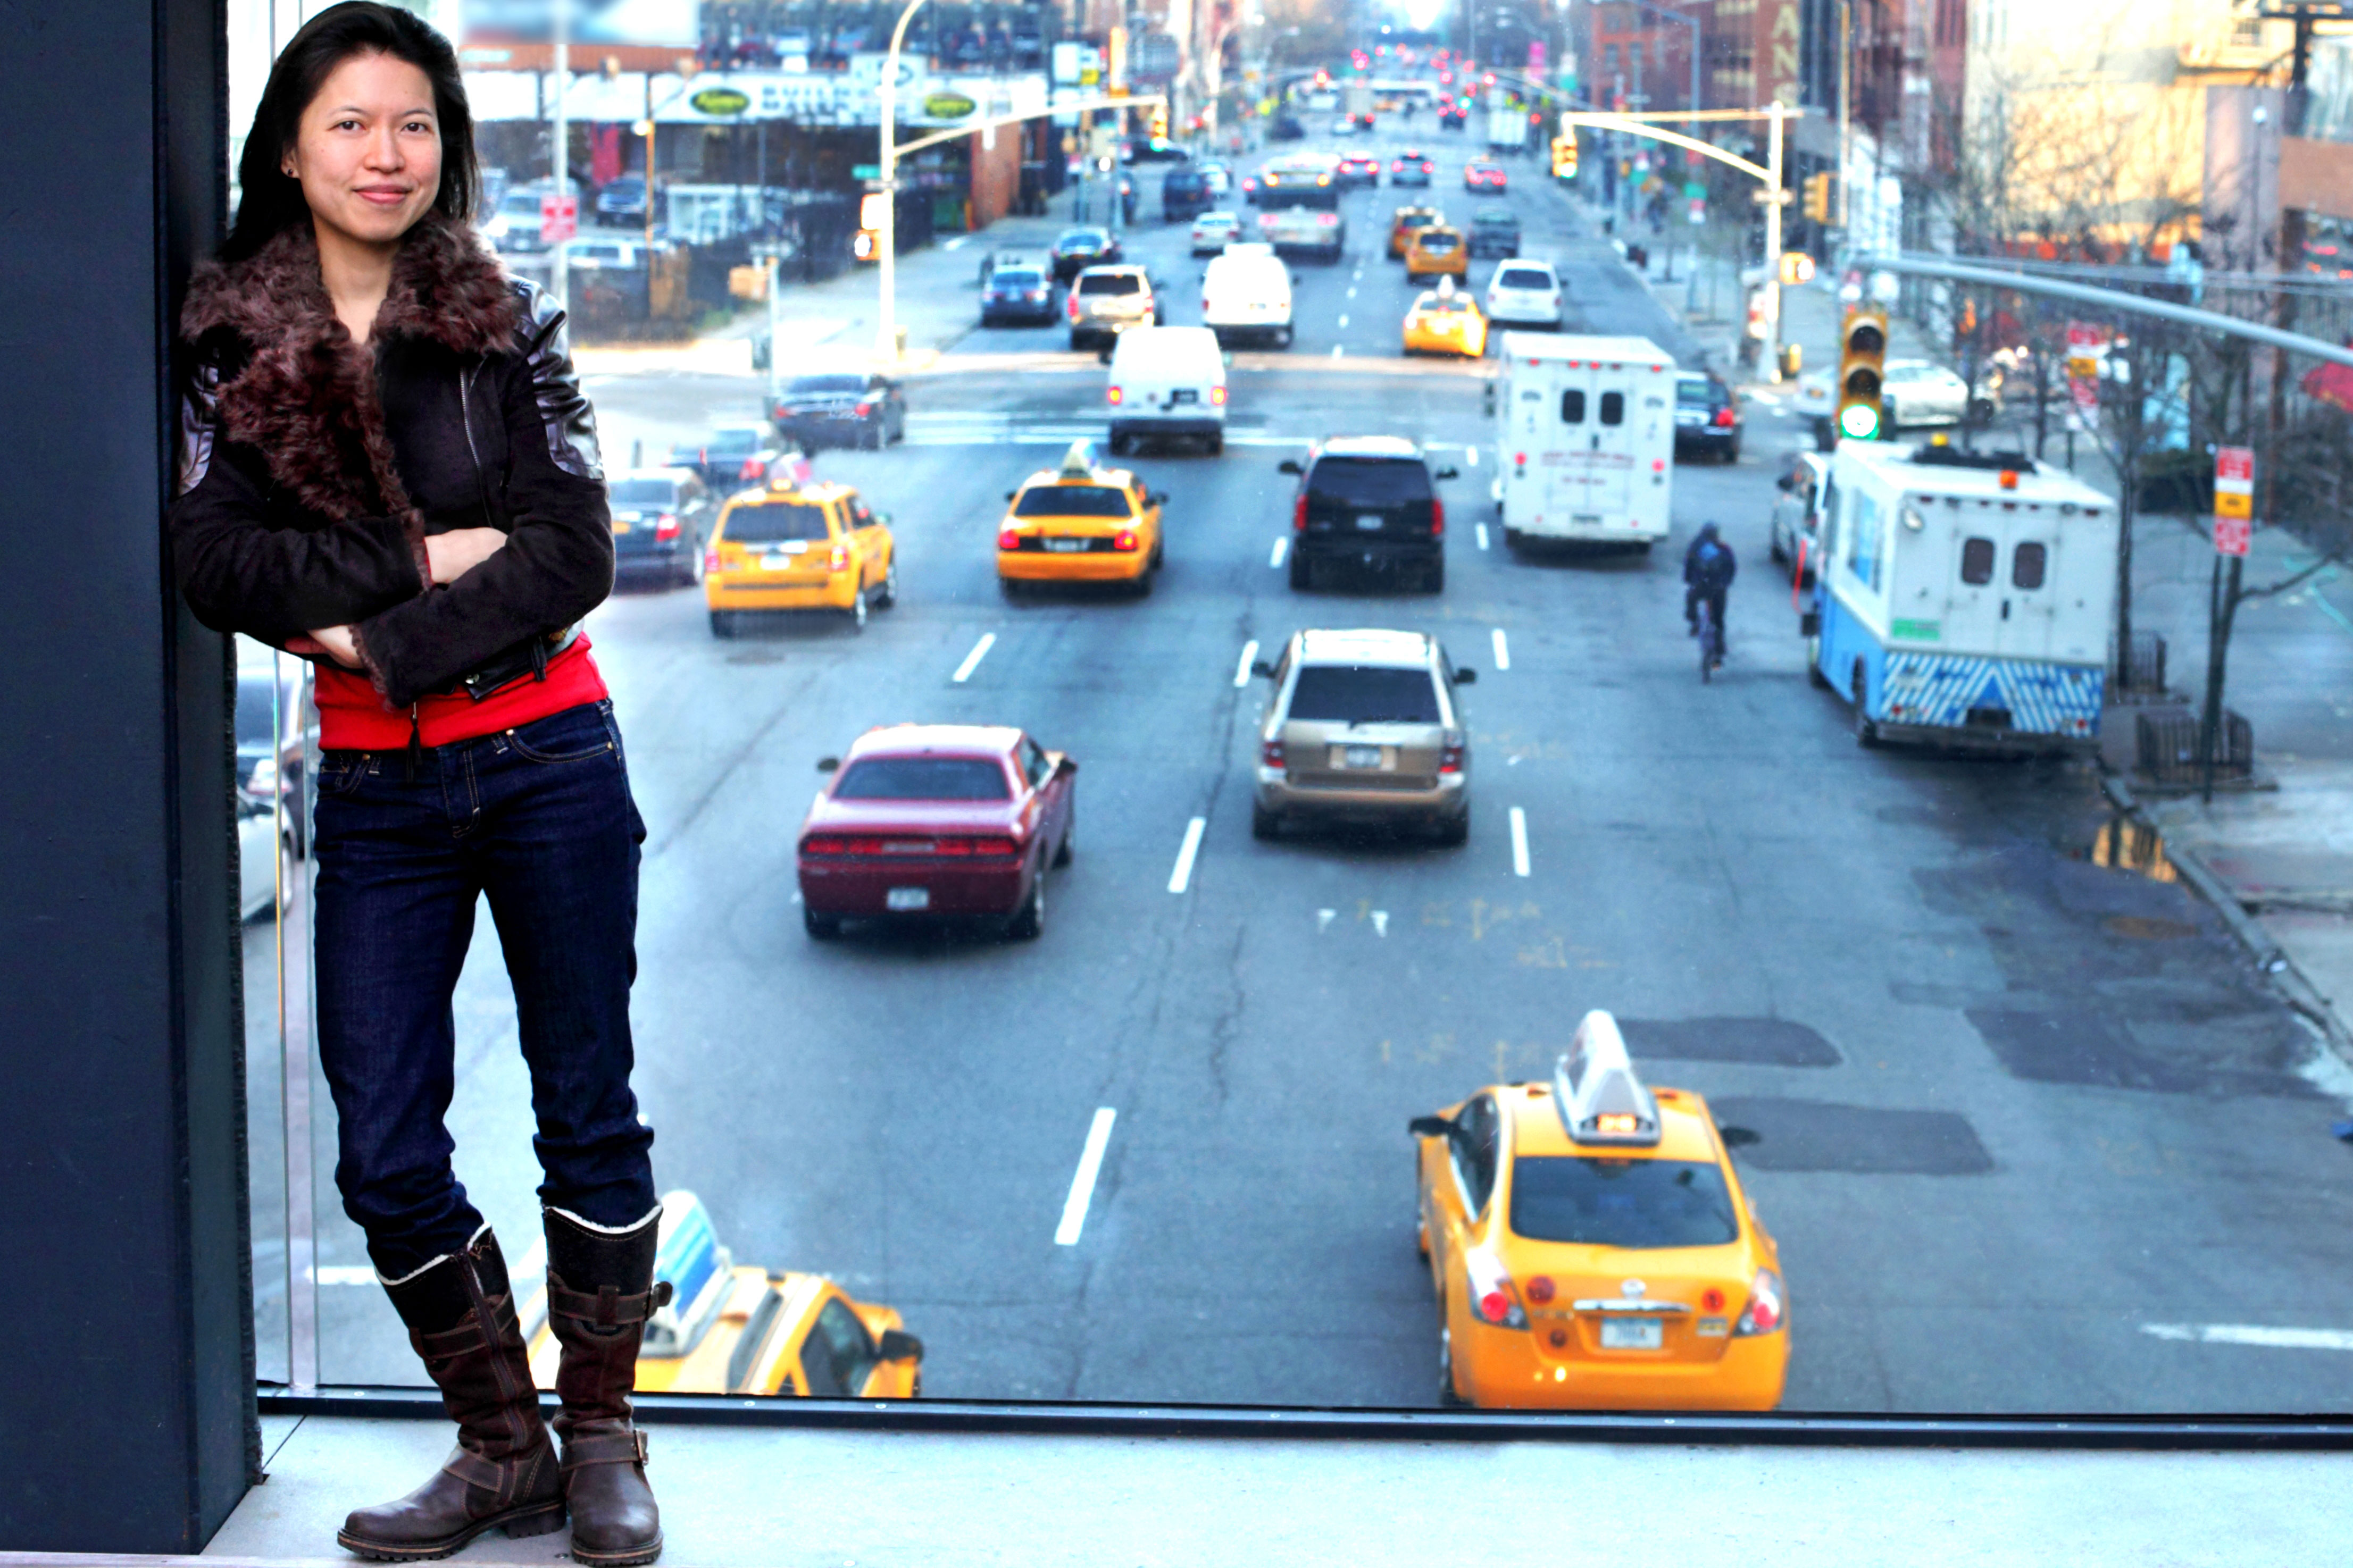 composer posing in a window overlooking NYC traffic